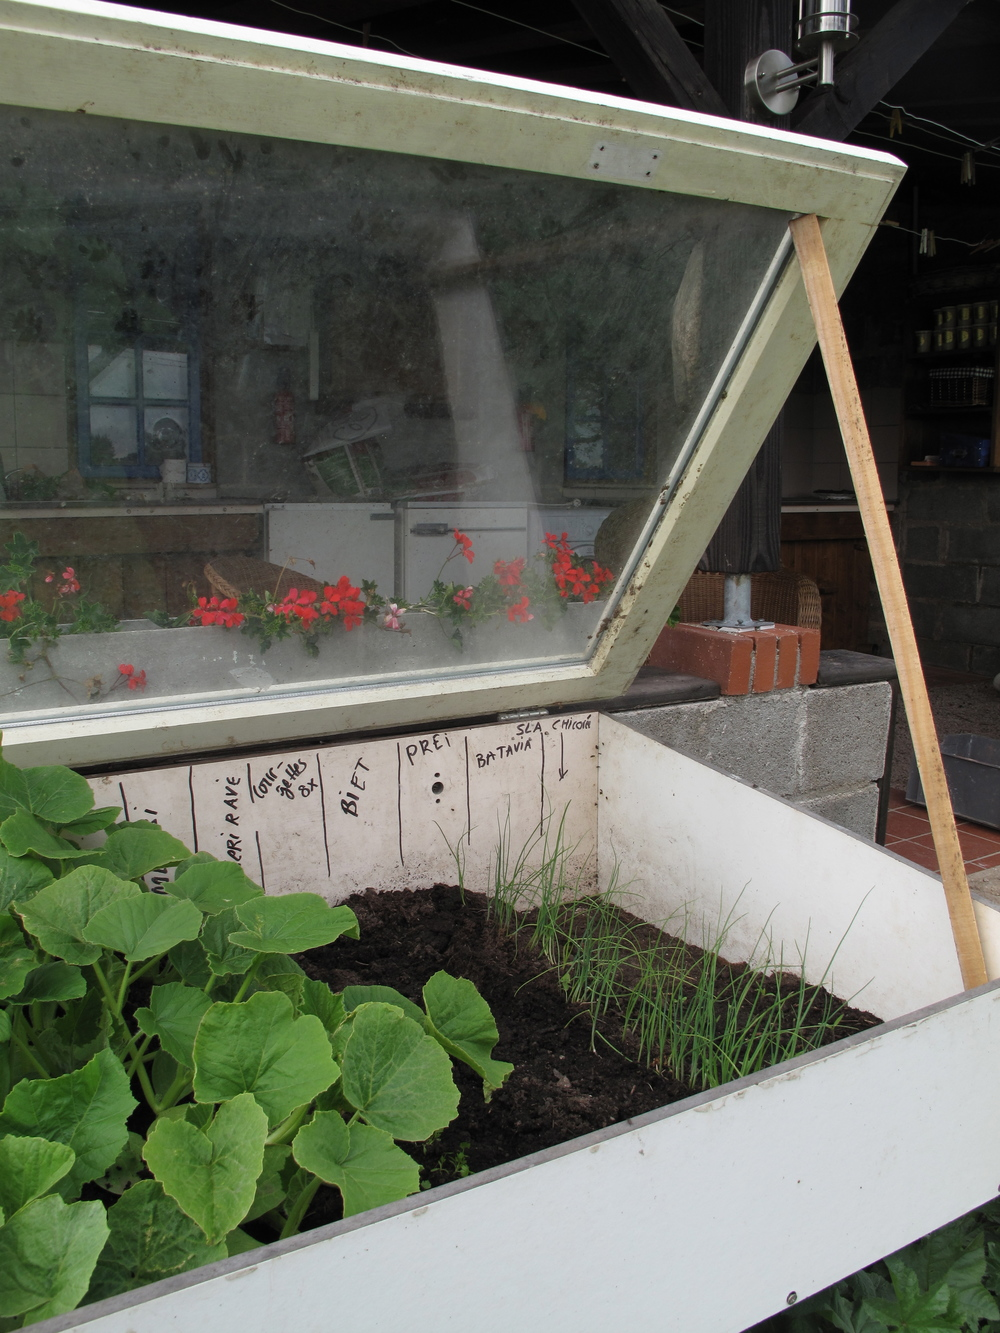 Tiny greenhouse for seedlings made from old school desks